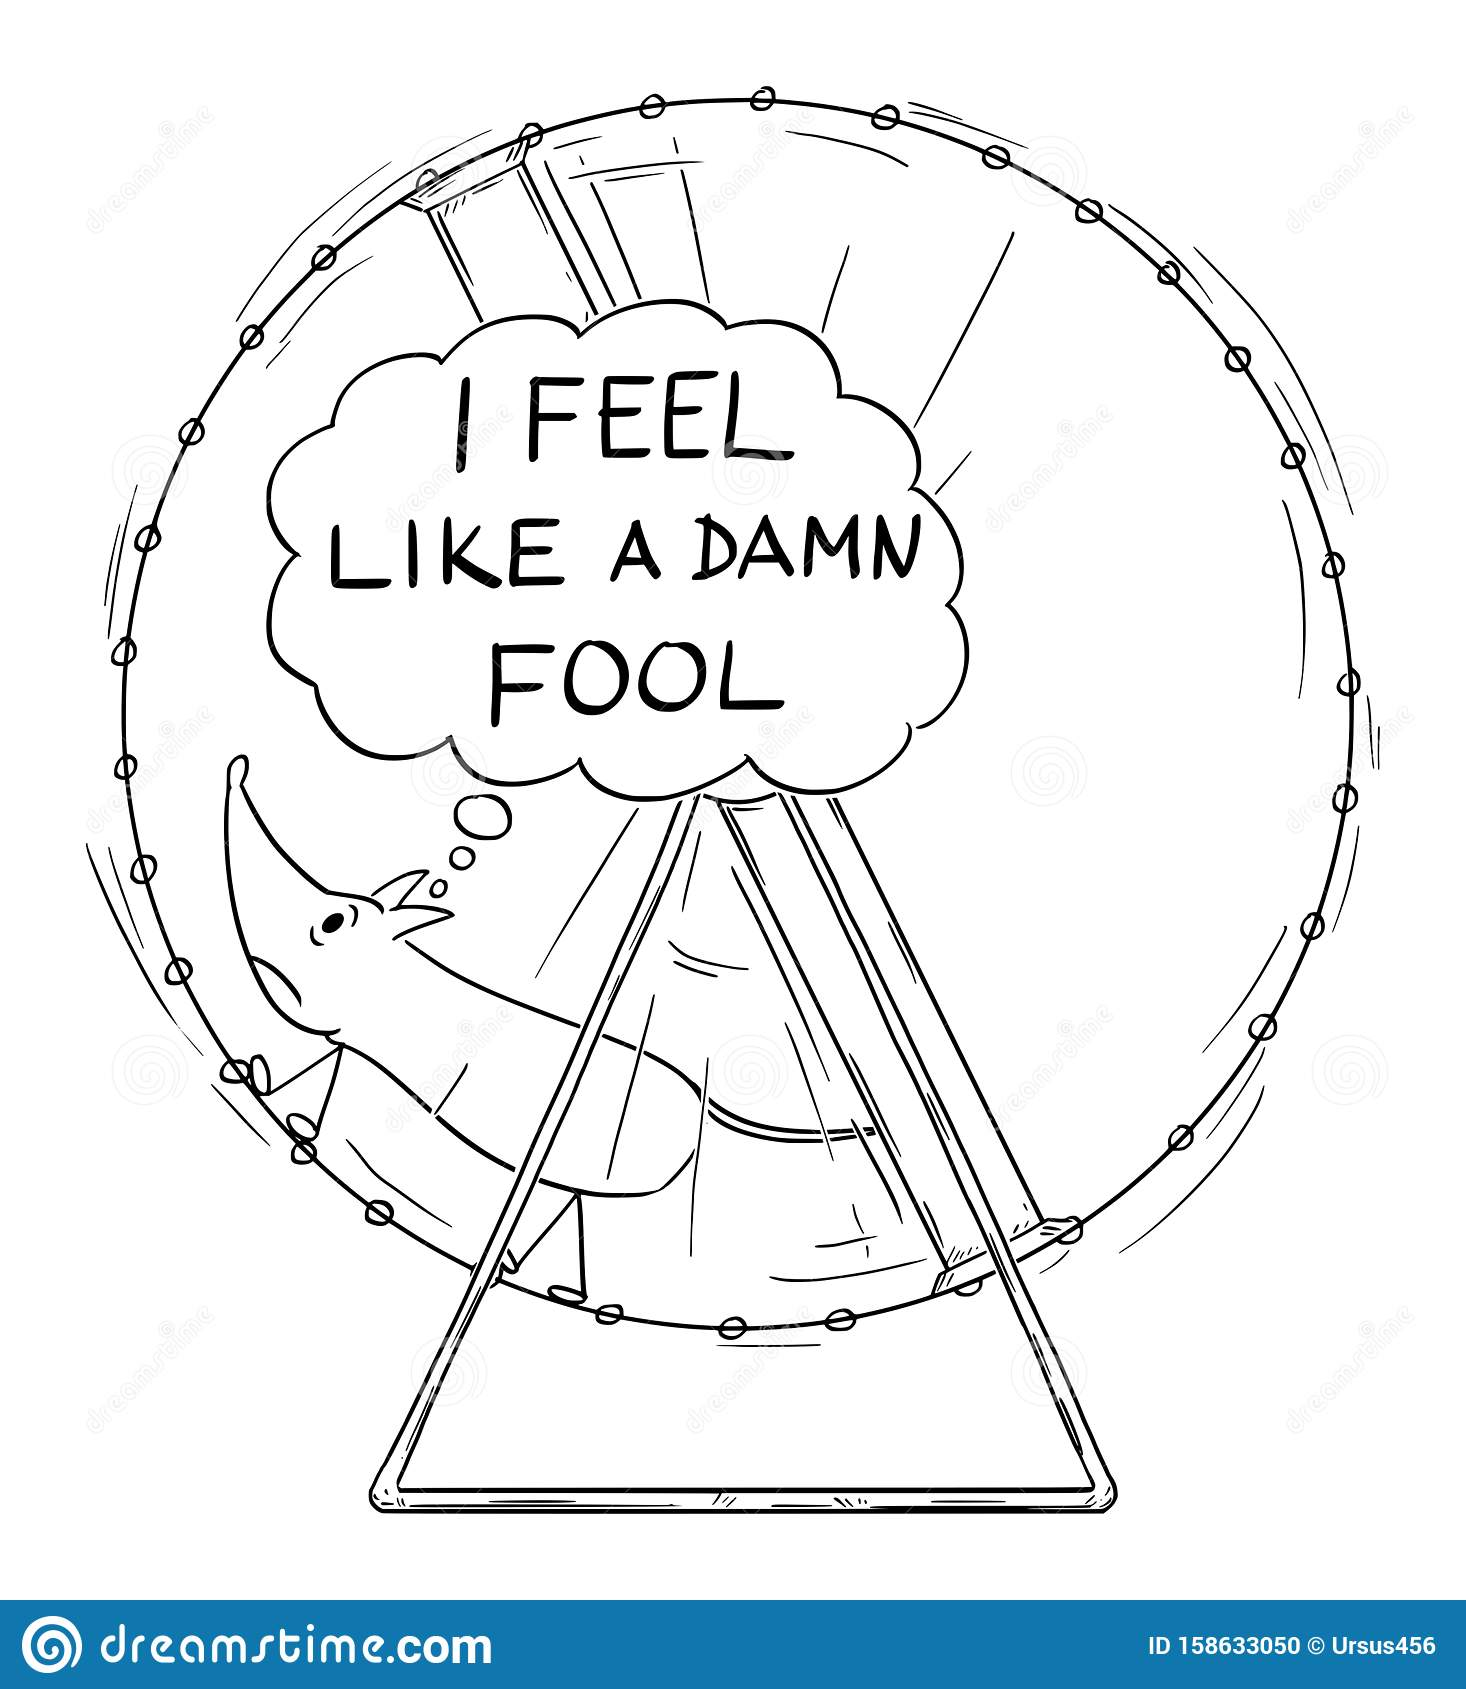 Vector Cartoon Illustration of Frustrated Mouse Running in Wheel with I Feel Like a Damn Fool Speech Bubble